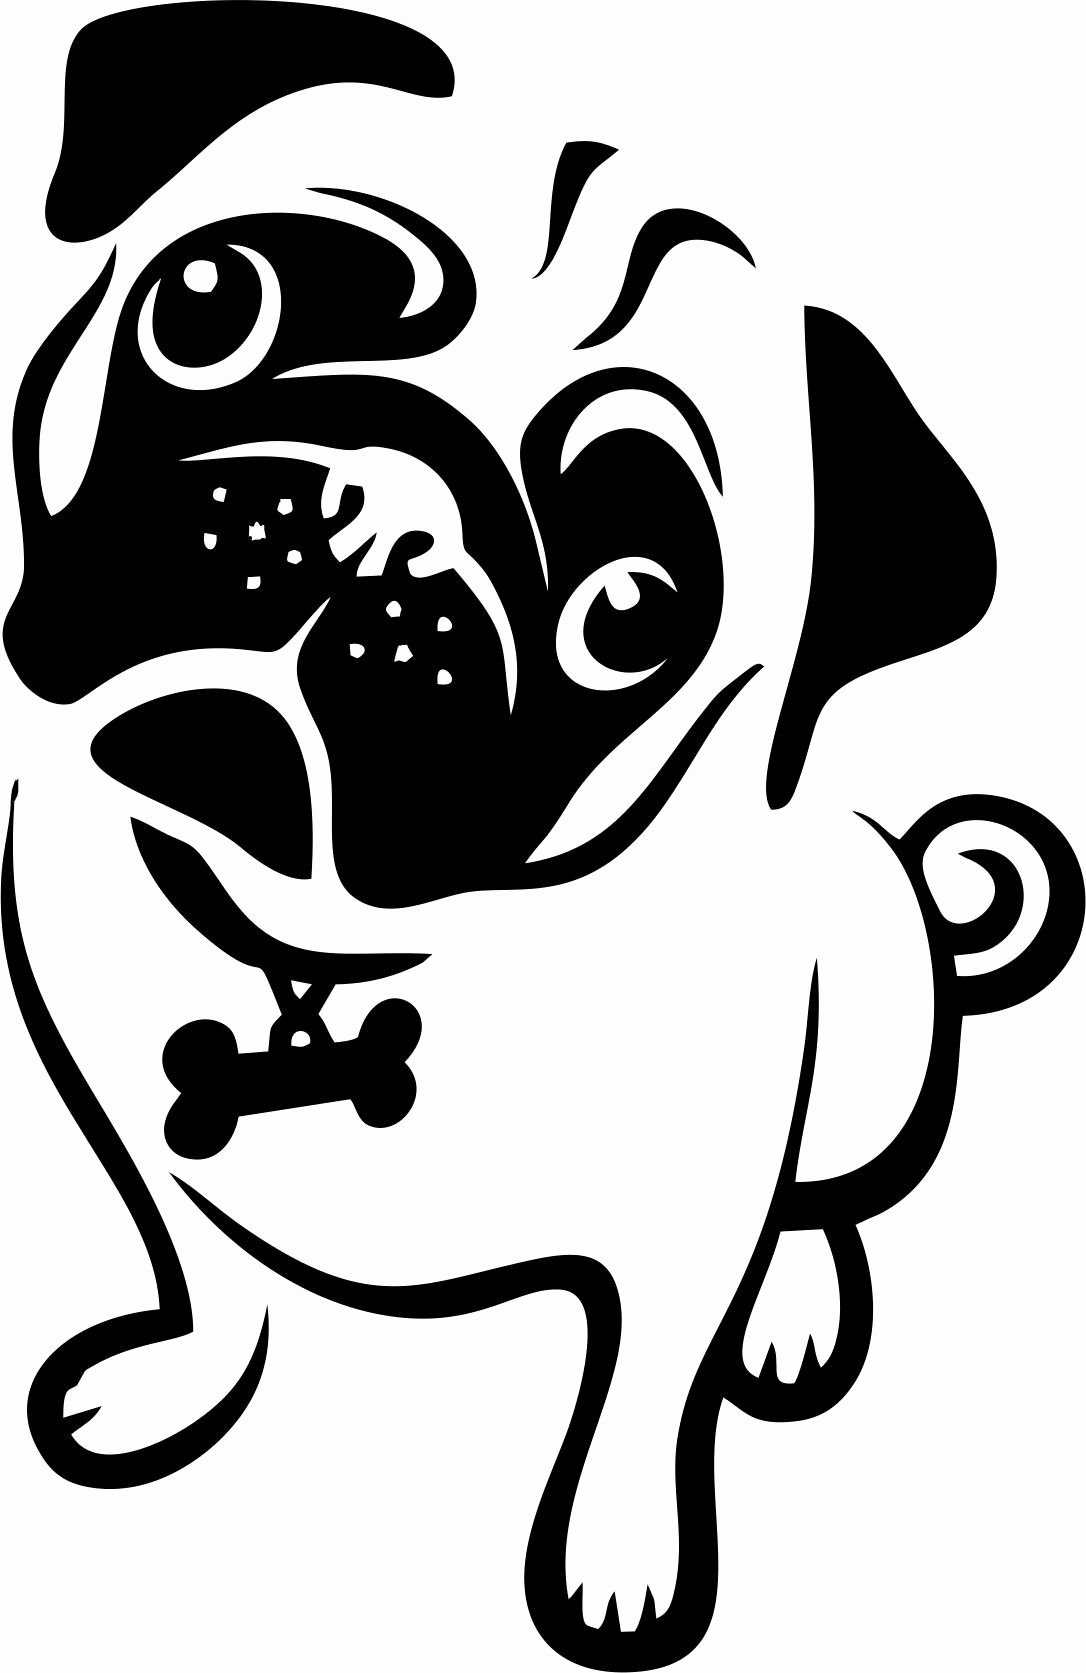 Multi Layer Stencil Templates Beautiful Pug Multi Layer Stencil Laser Cut From Mylar